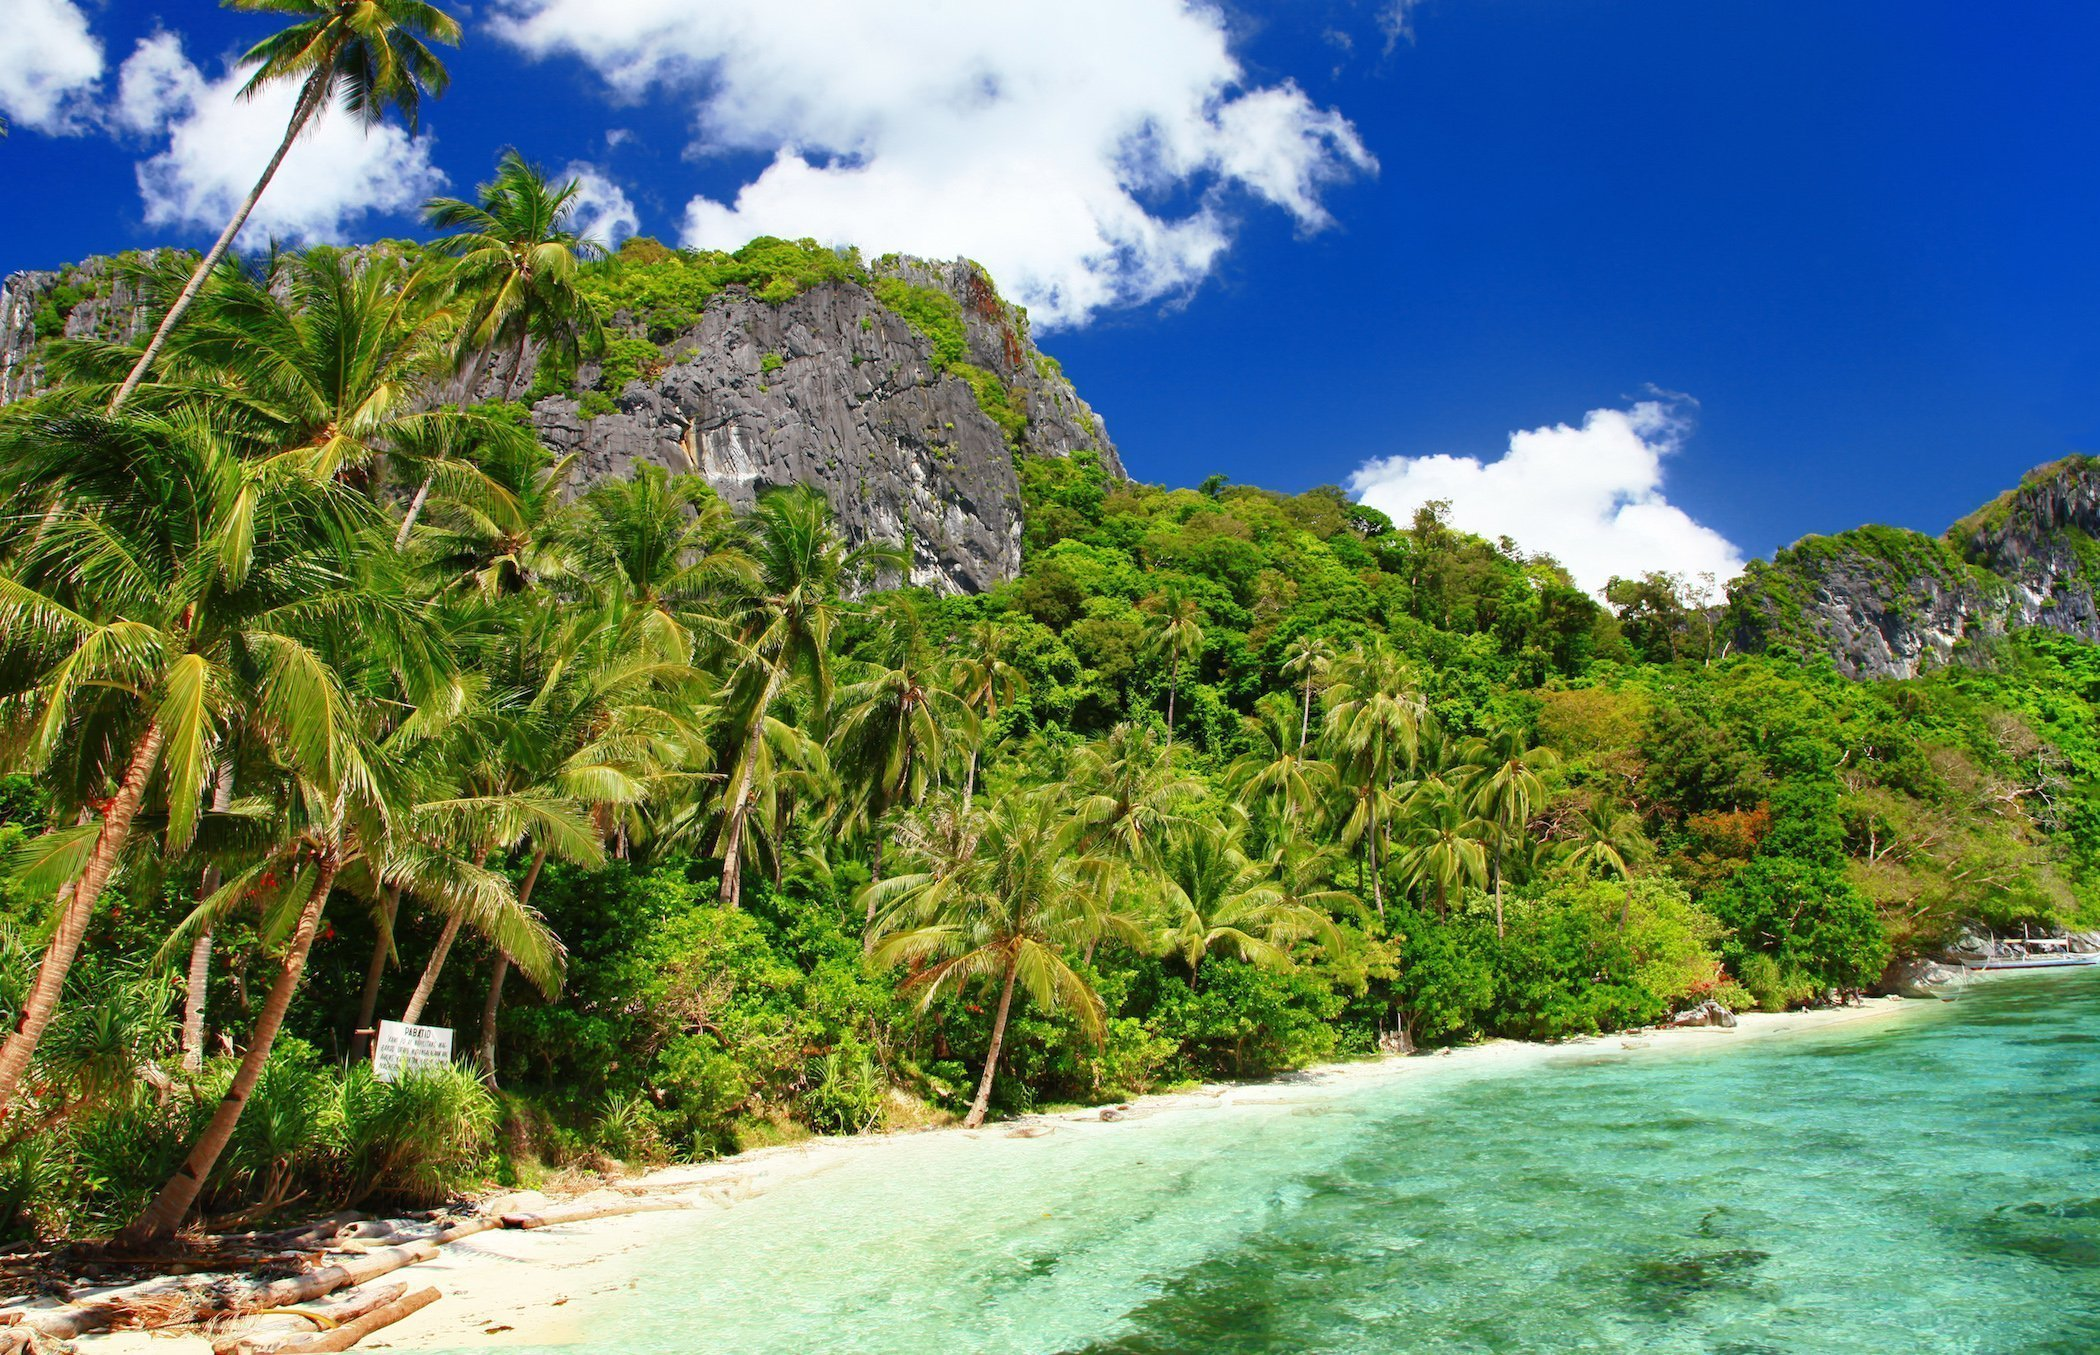 Panoramic view of a secluded beach in El Nido